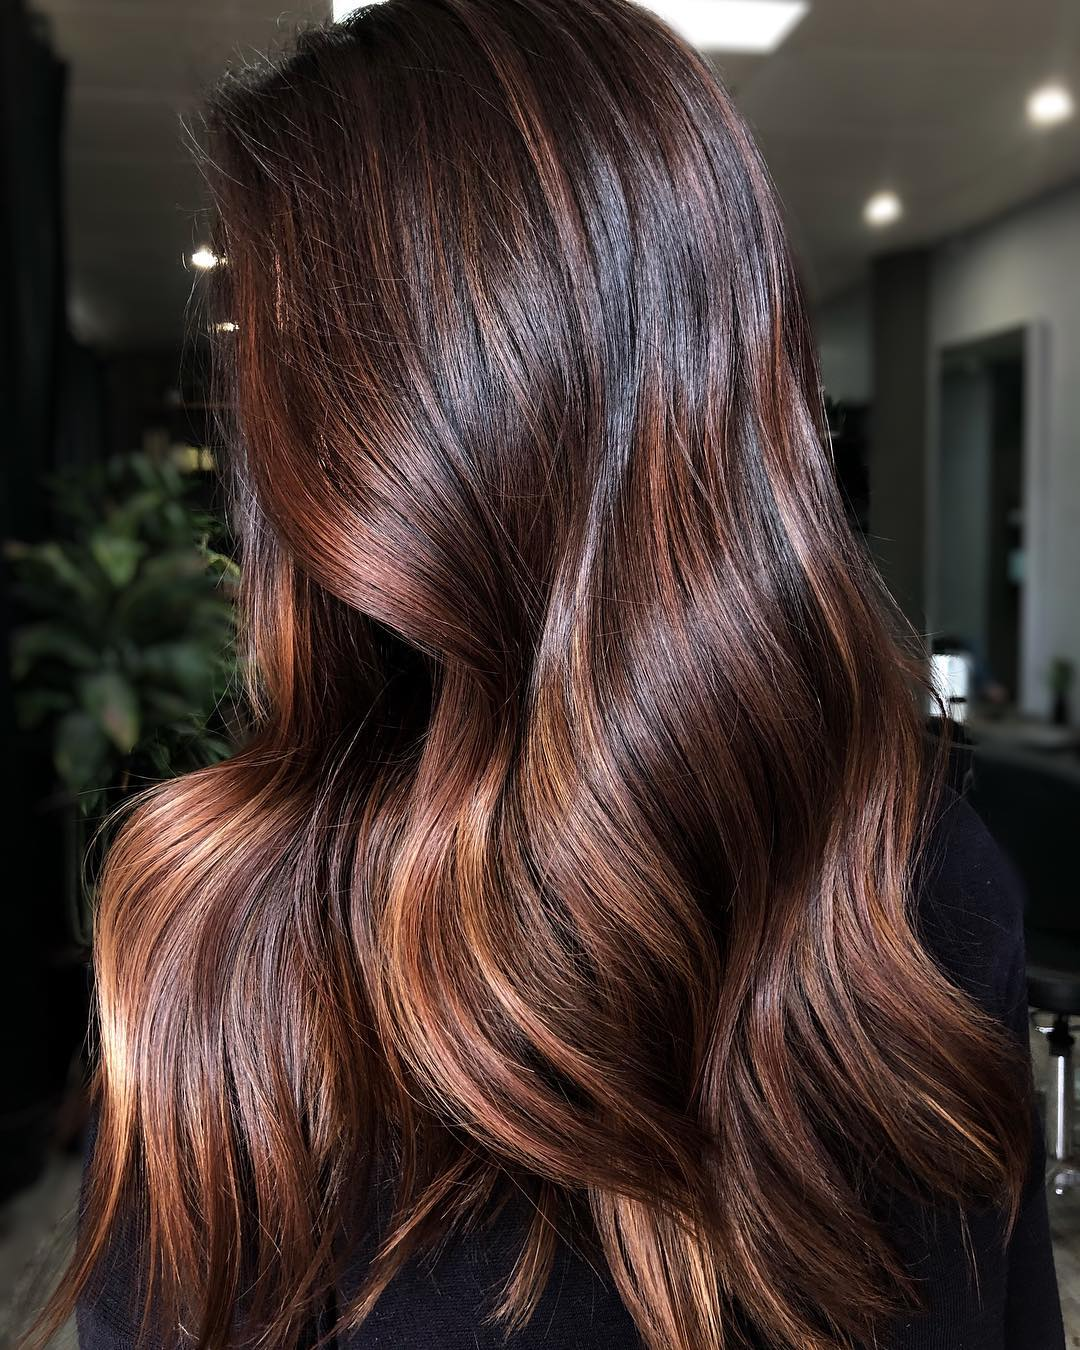 Dark Chocolate Hair with Brown Highlights